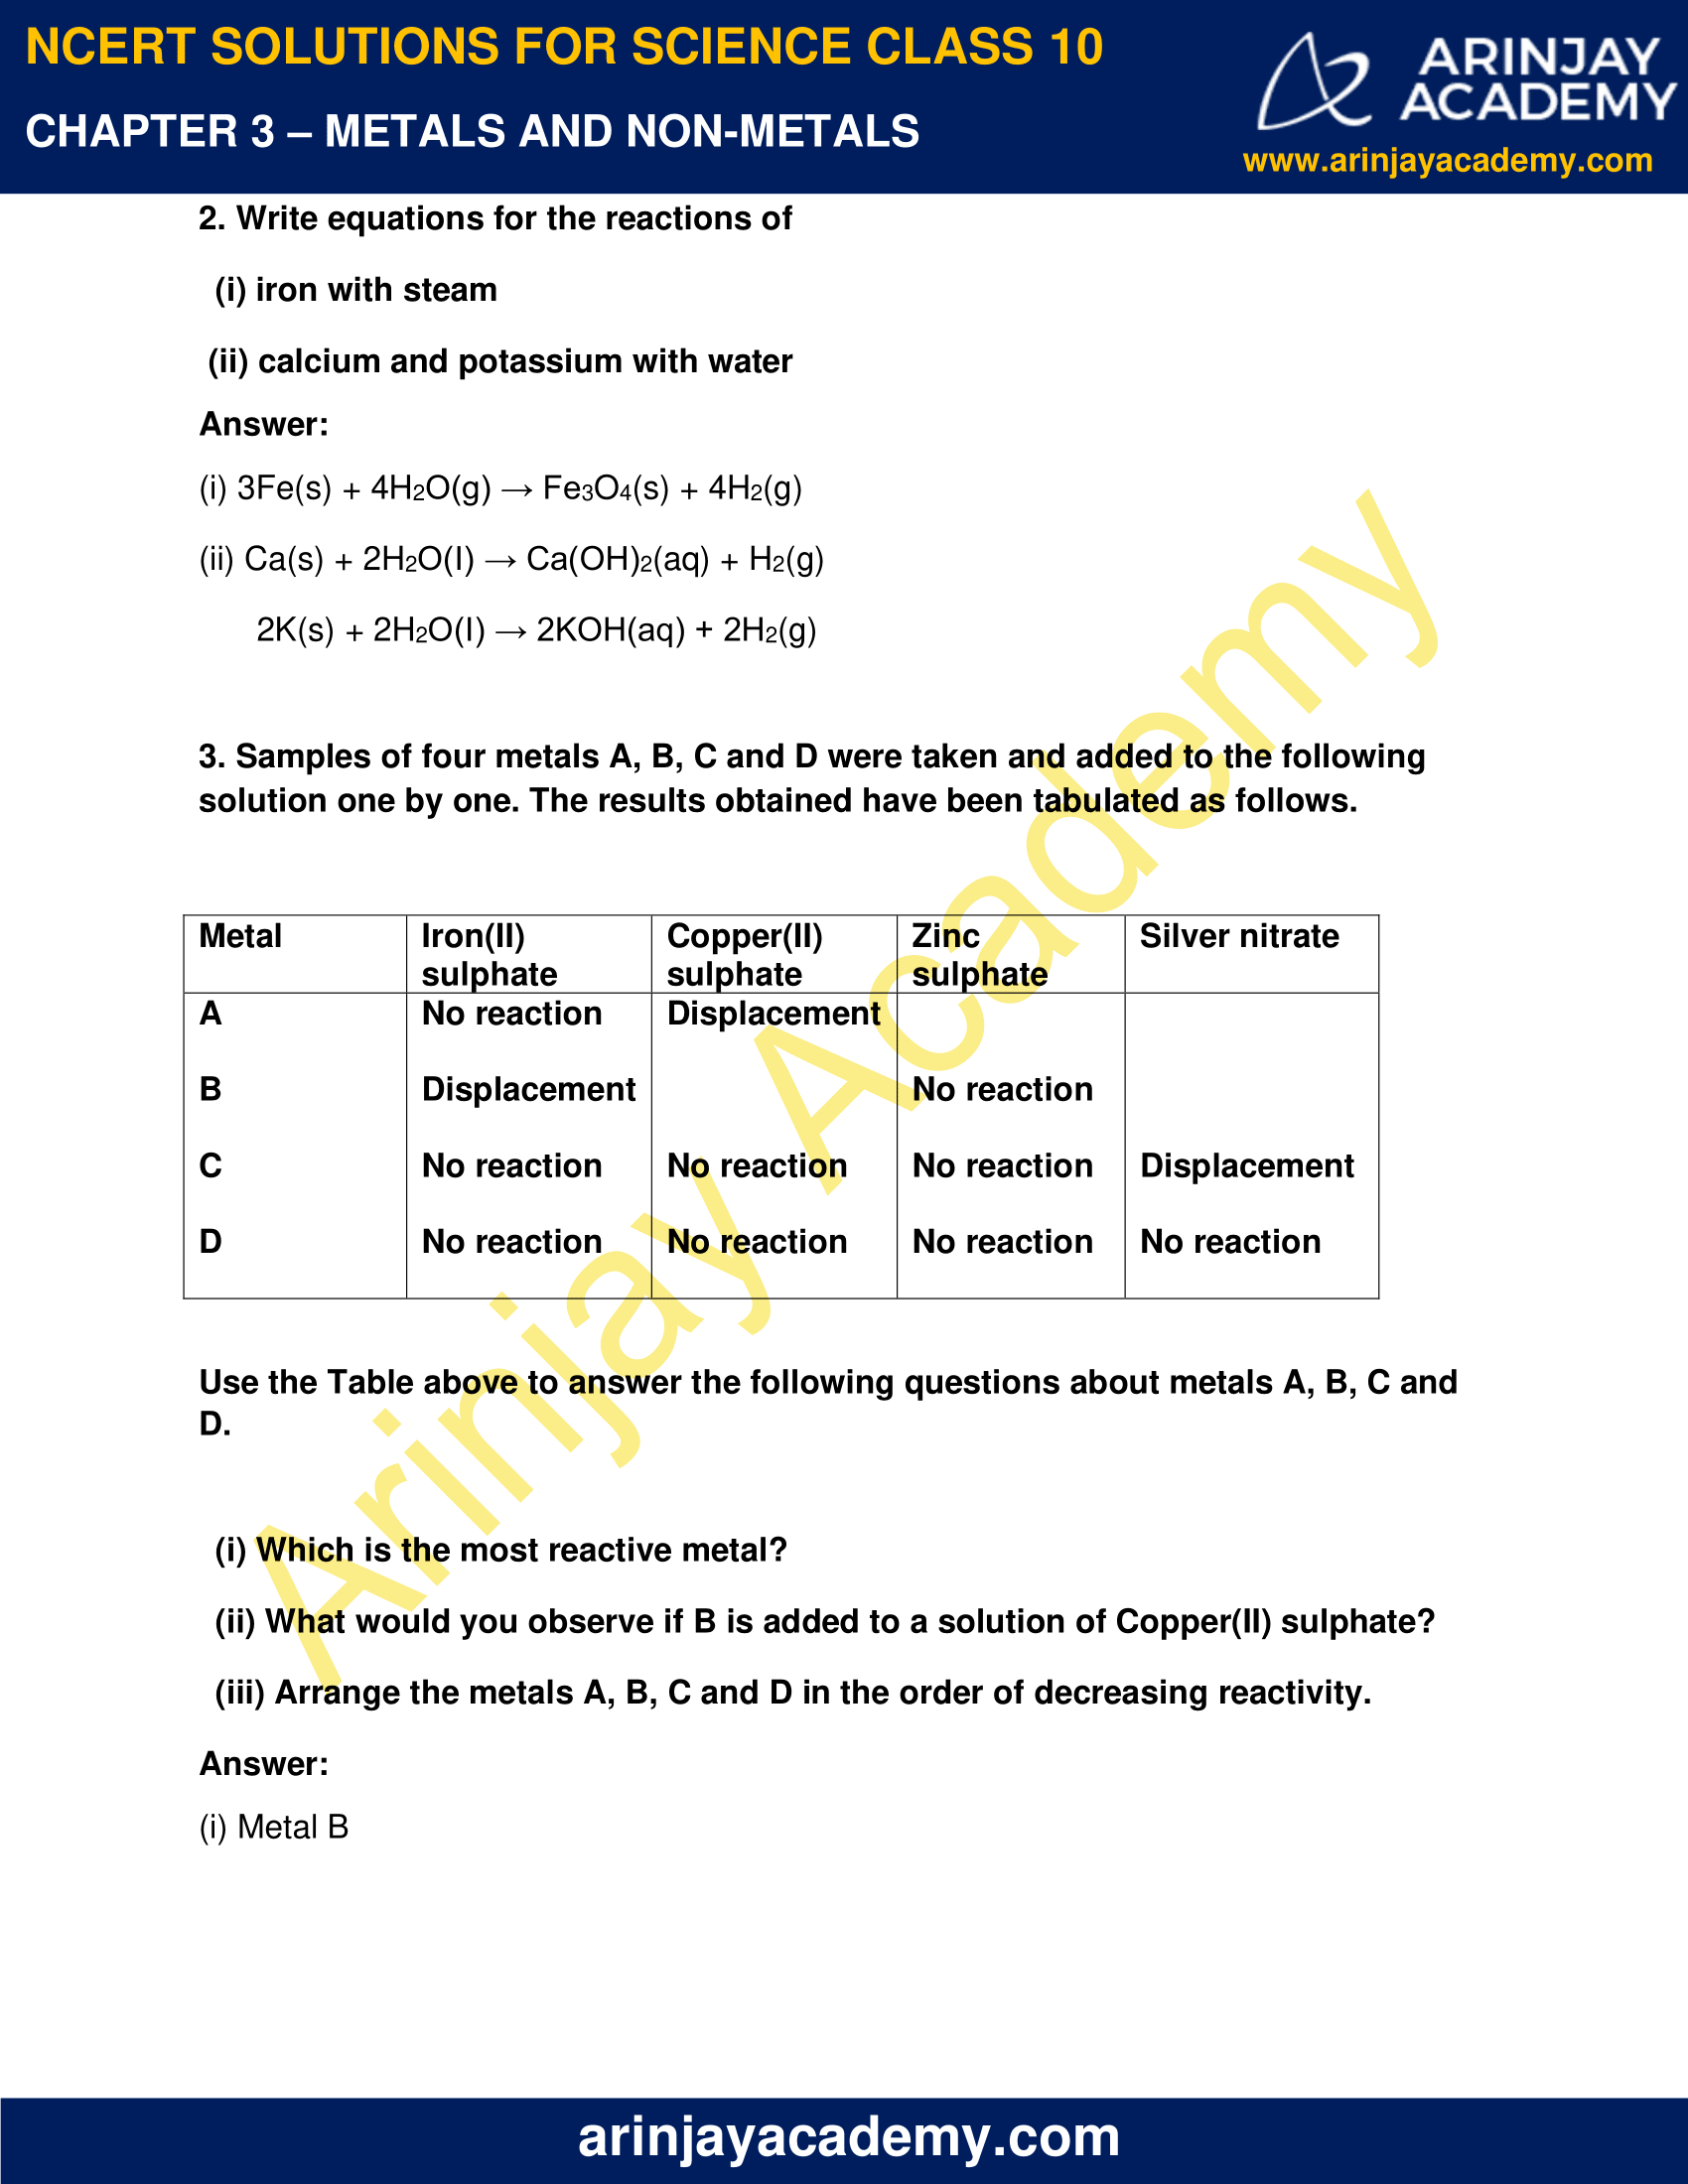 NCERT Solutions for Class 10 Science Chapter 3 image 2